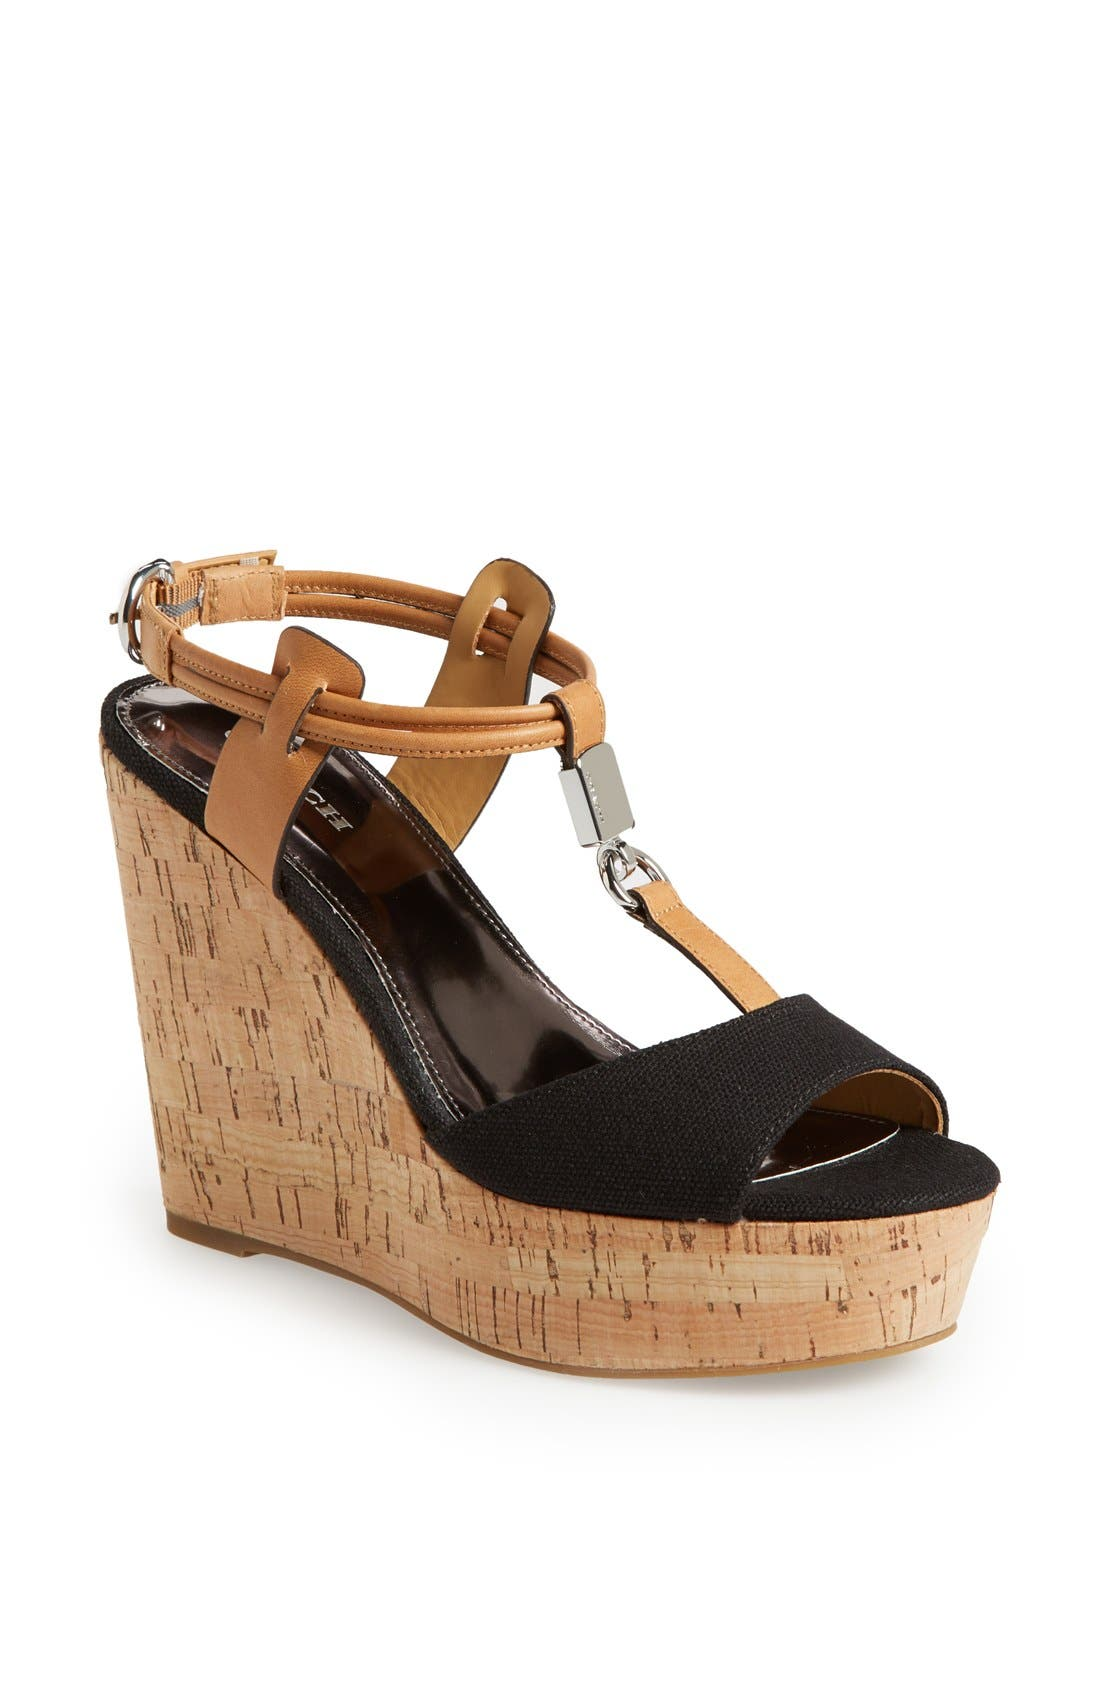 Alternate Image 1 Selected - COACH 'Linden' Wedge Platform Sandal